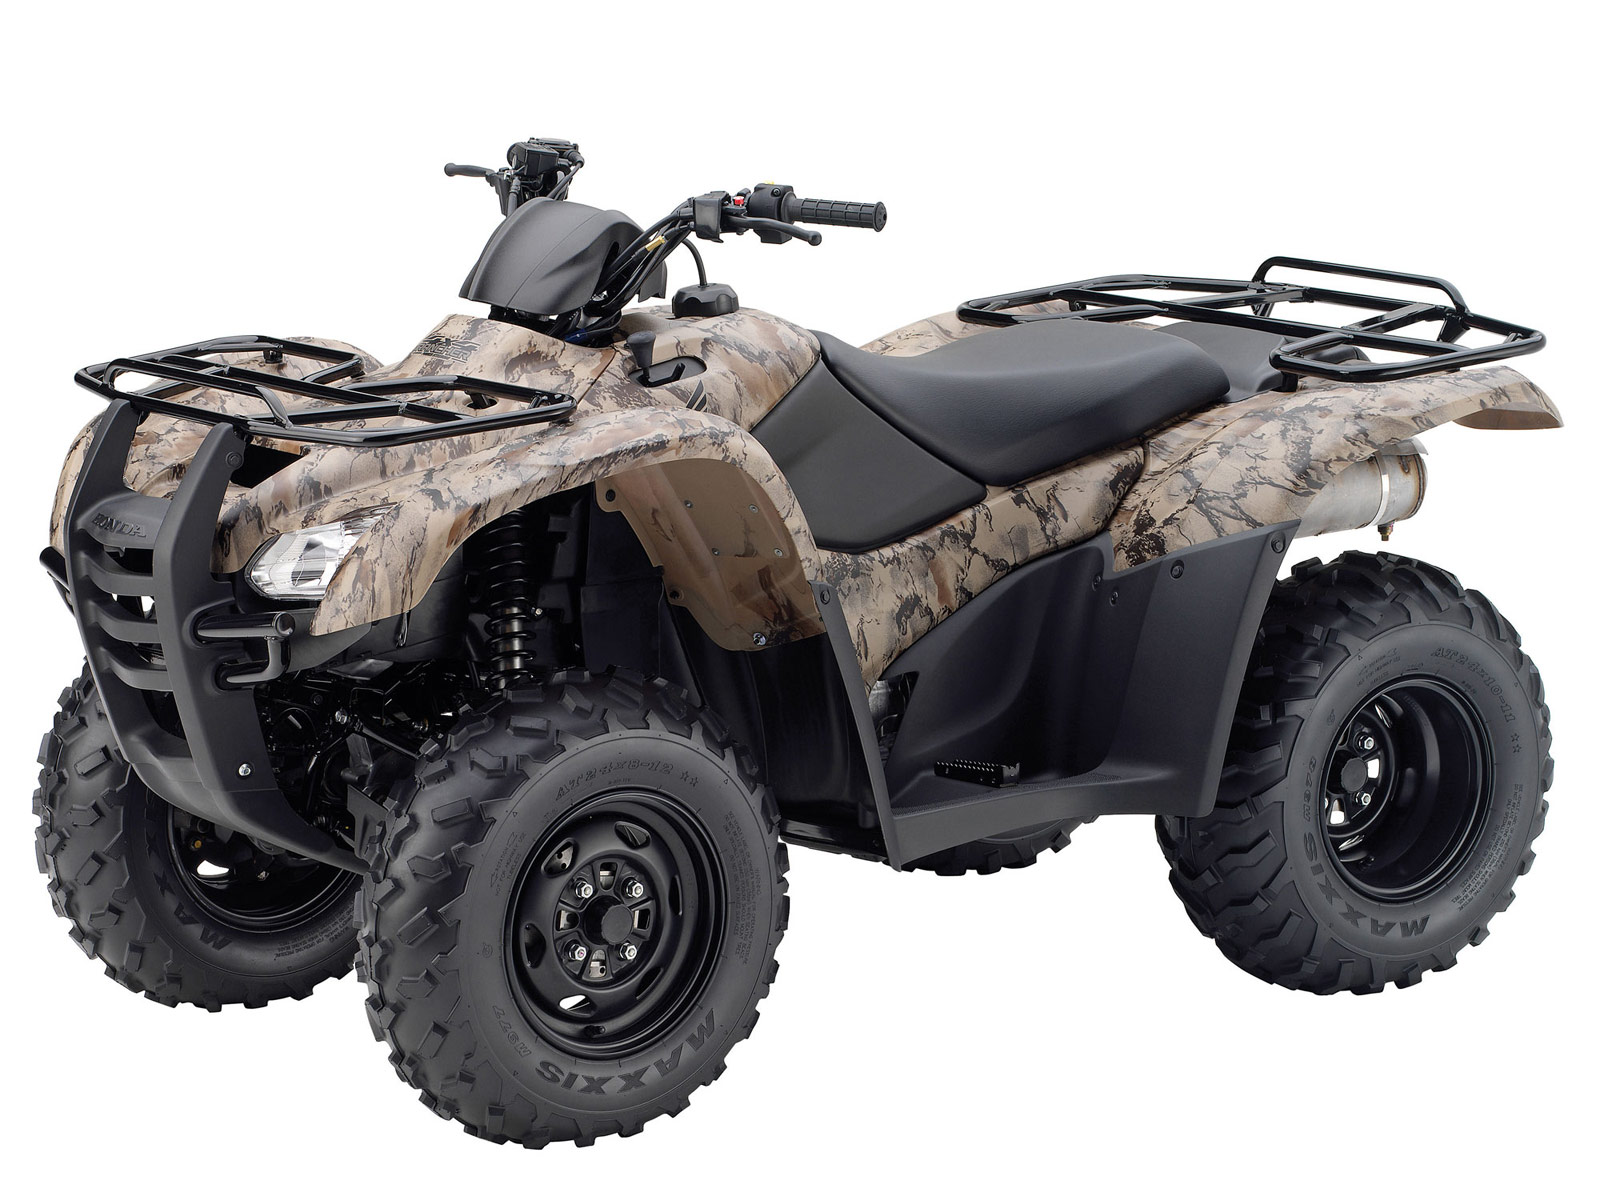 2013 honda fourtrax rancher 4x4 trx420fm pictures. Black Bedroom Furniture Sets. Home Design Ideas